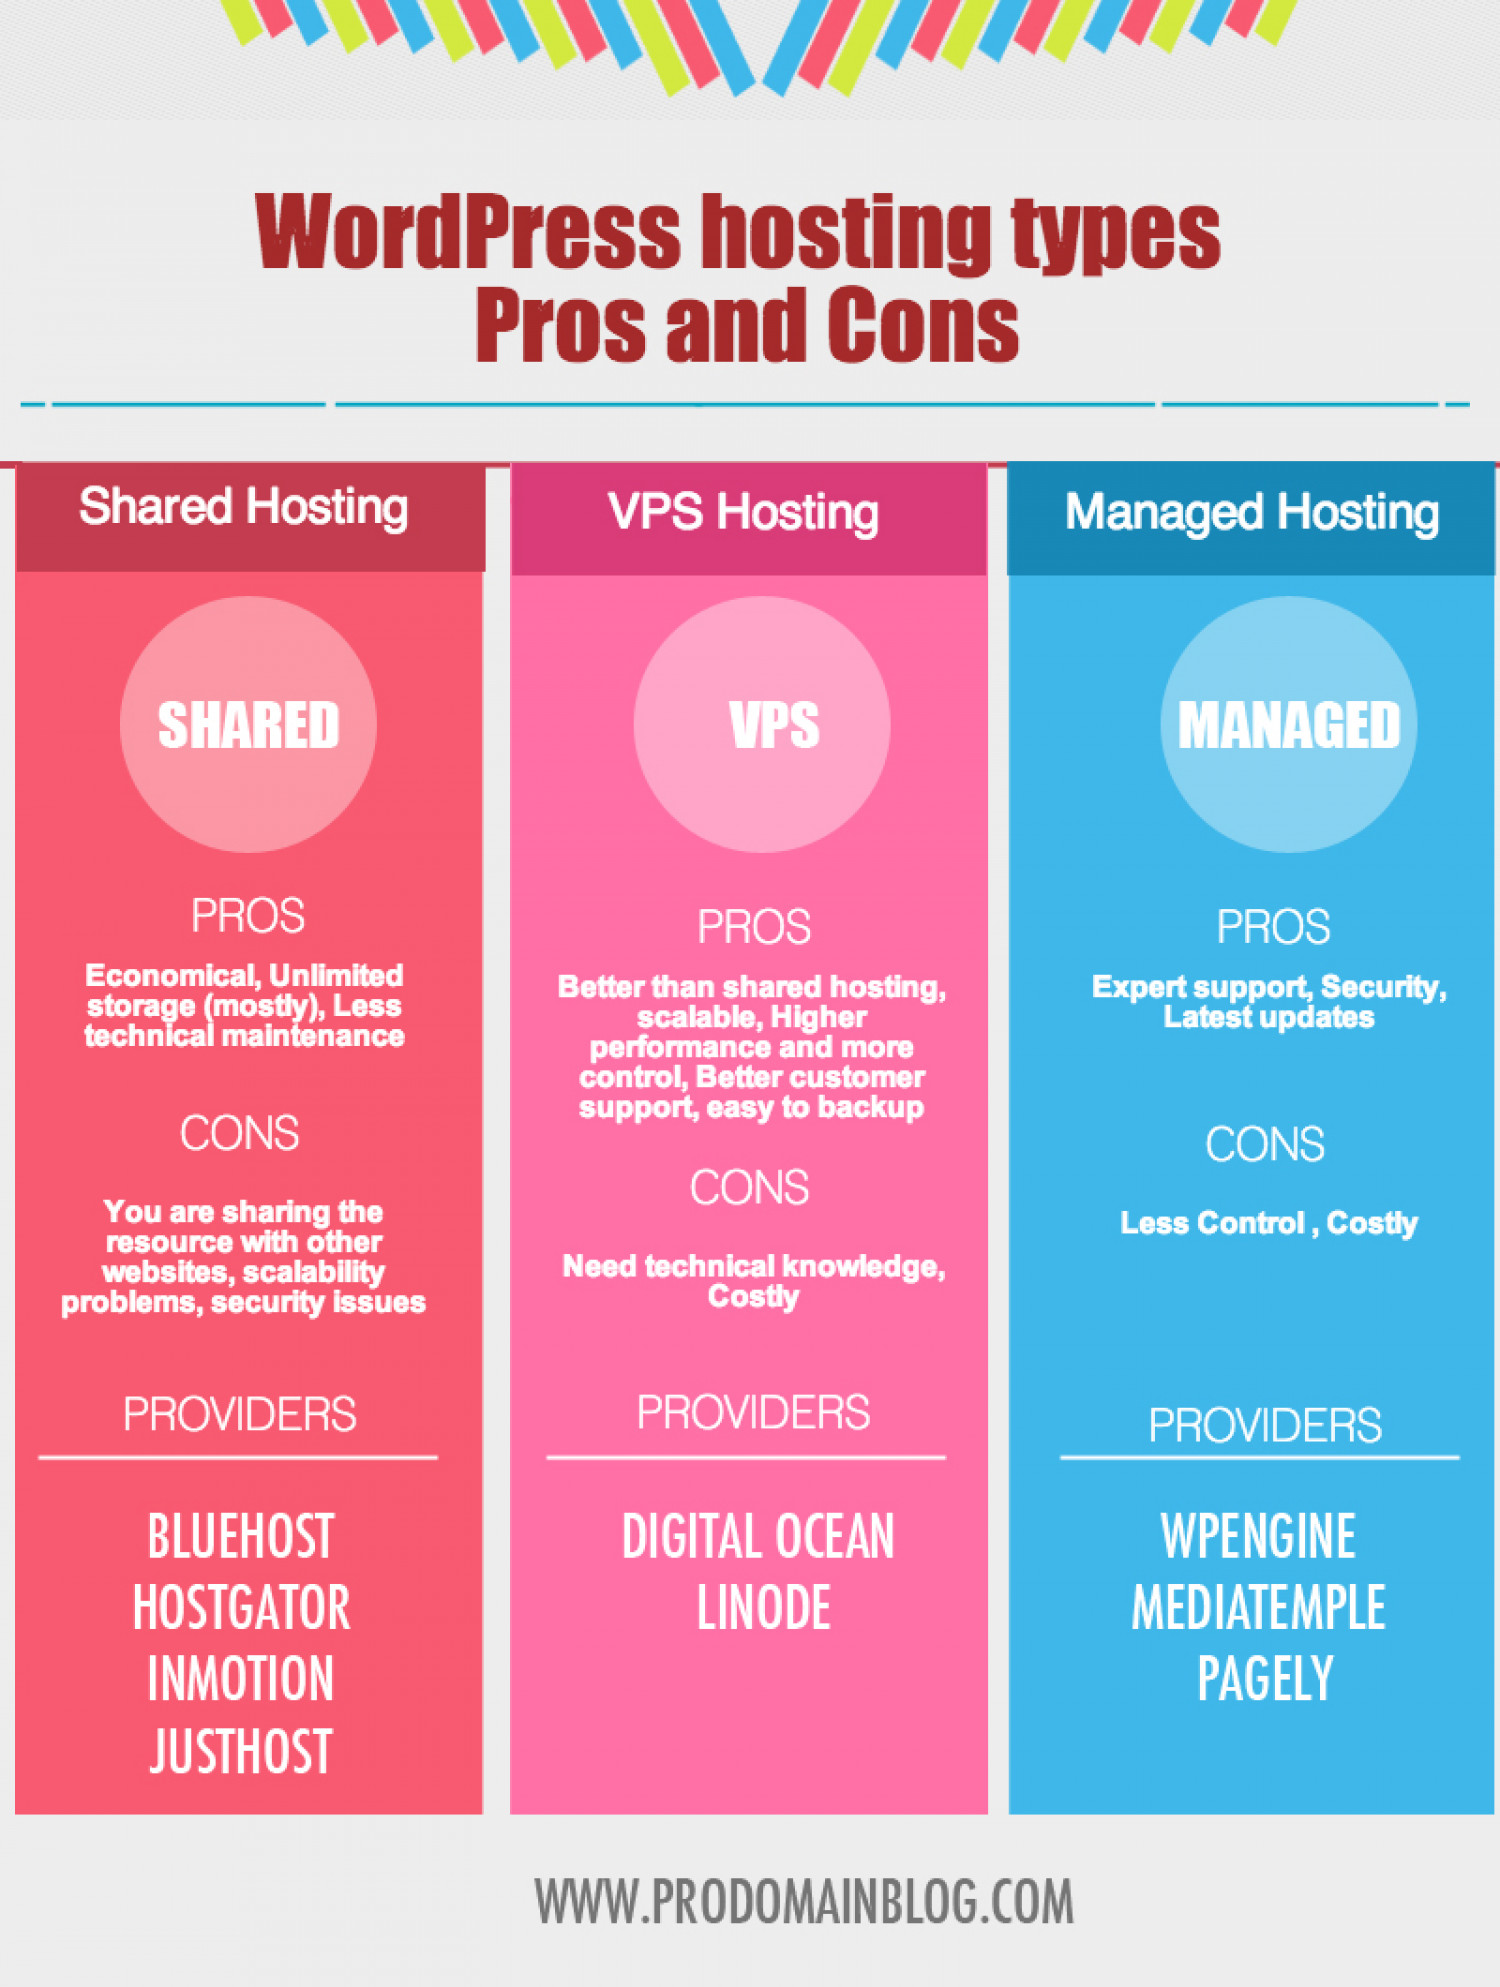 WordPress Hosting Types Pros And Cons Infographic